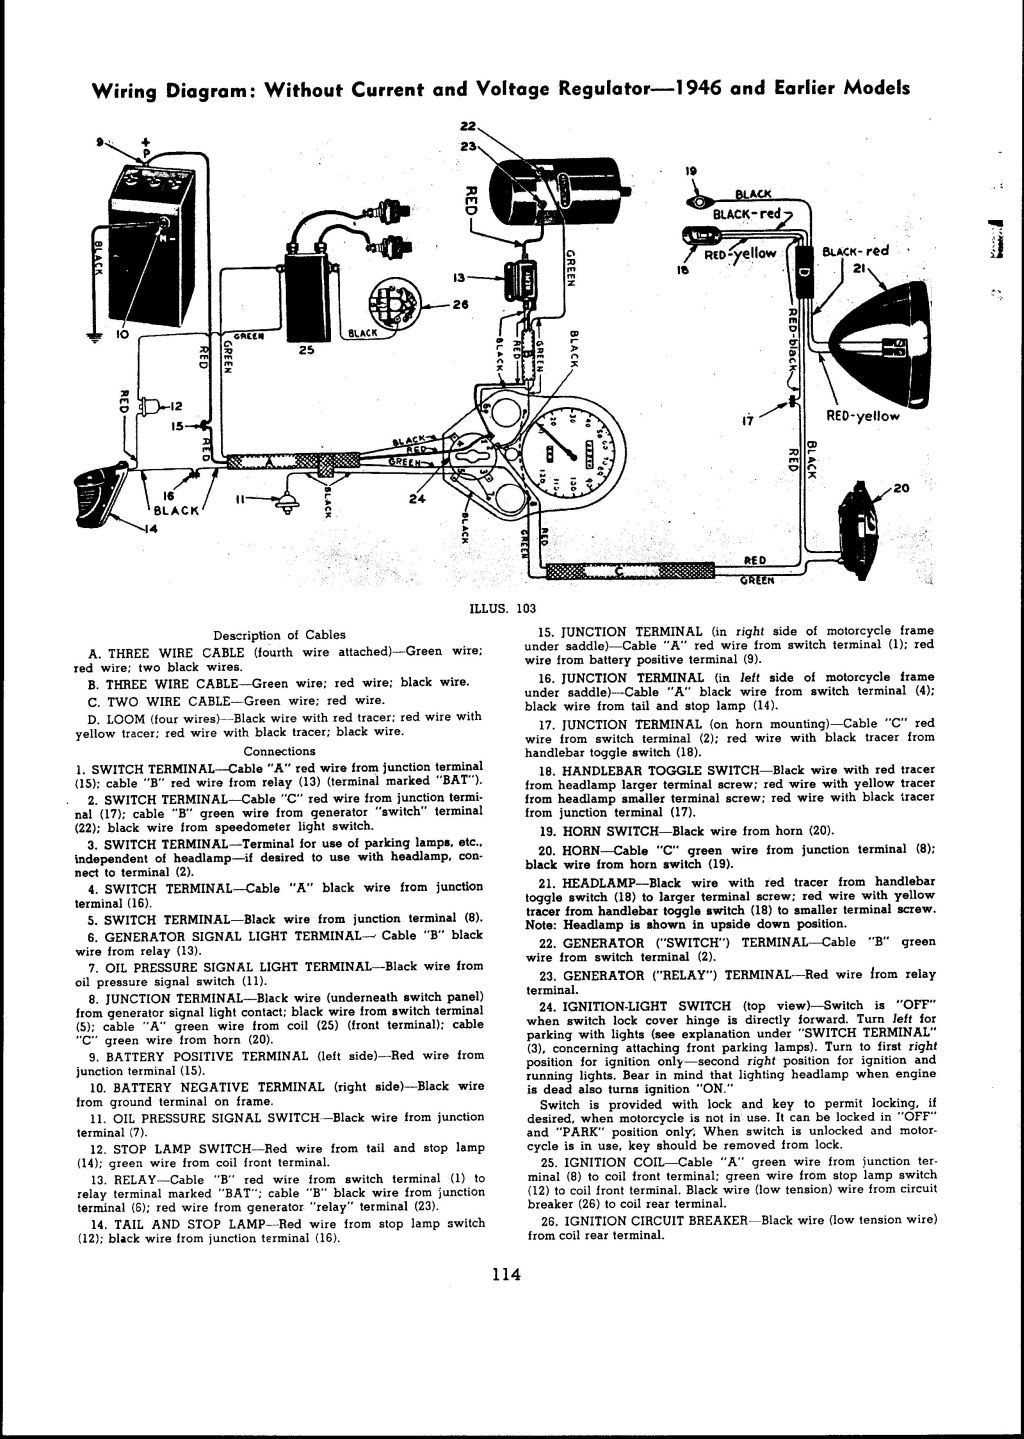 DIAGRAM] 1998 Harley Wiring Diagram FULL Version HD Quality ... on